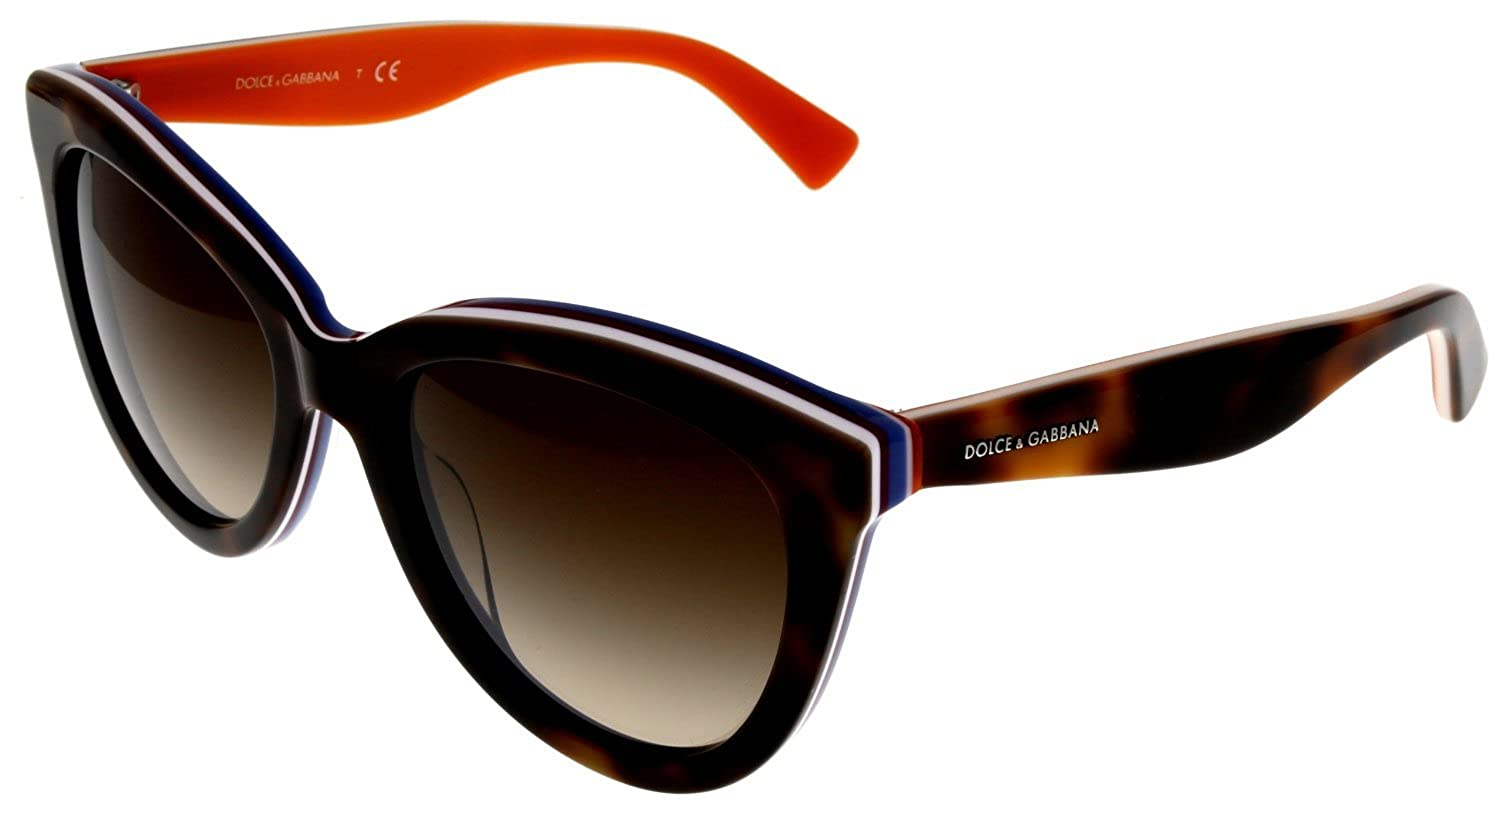 9013634cfd5 Amazon.com  Dolce   Gabbana Sunglasses Women DG4207 276513 Cat Eye  Clothing